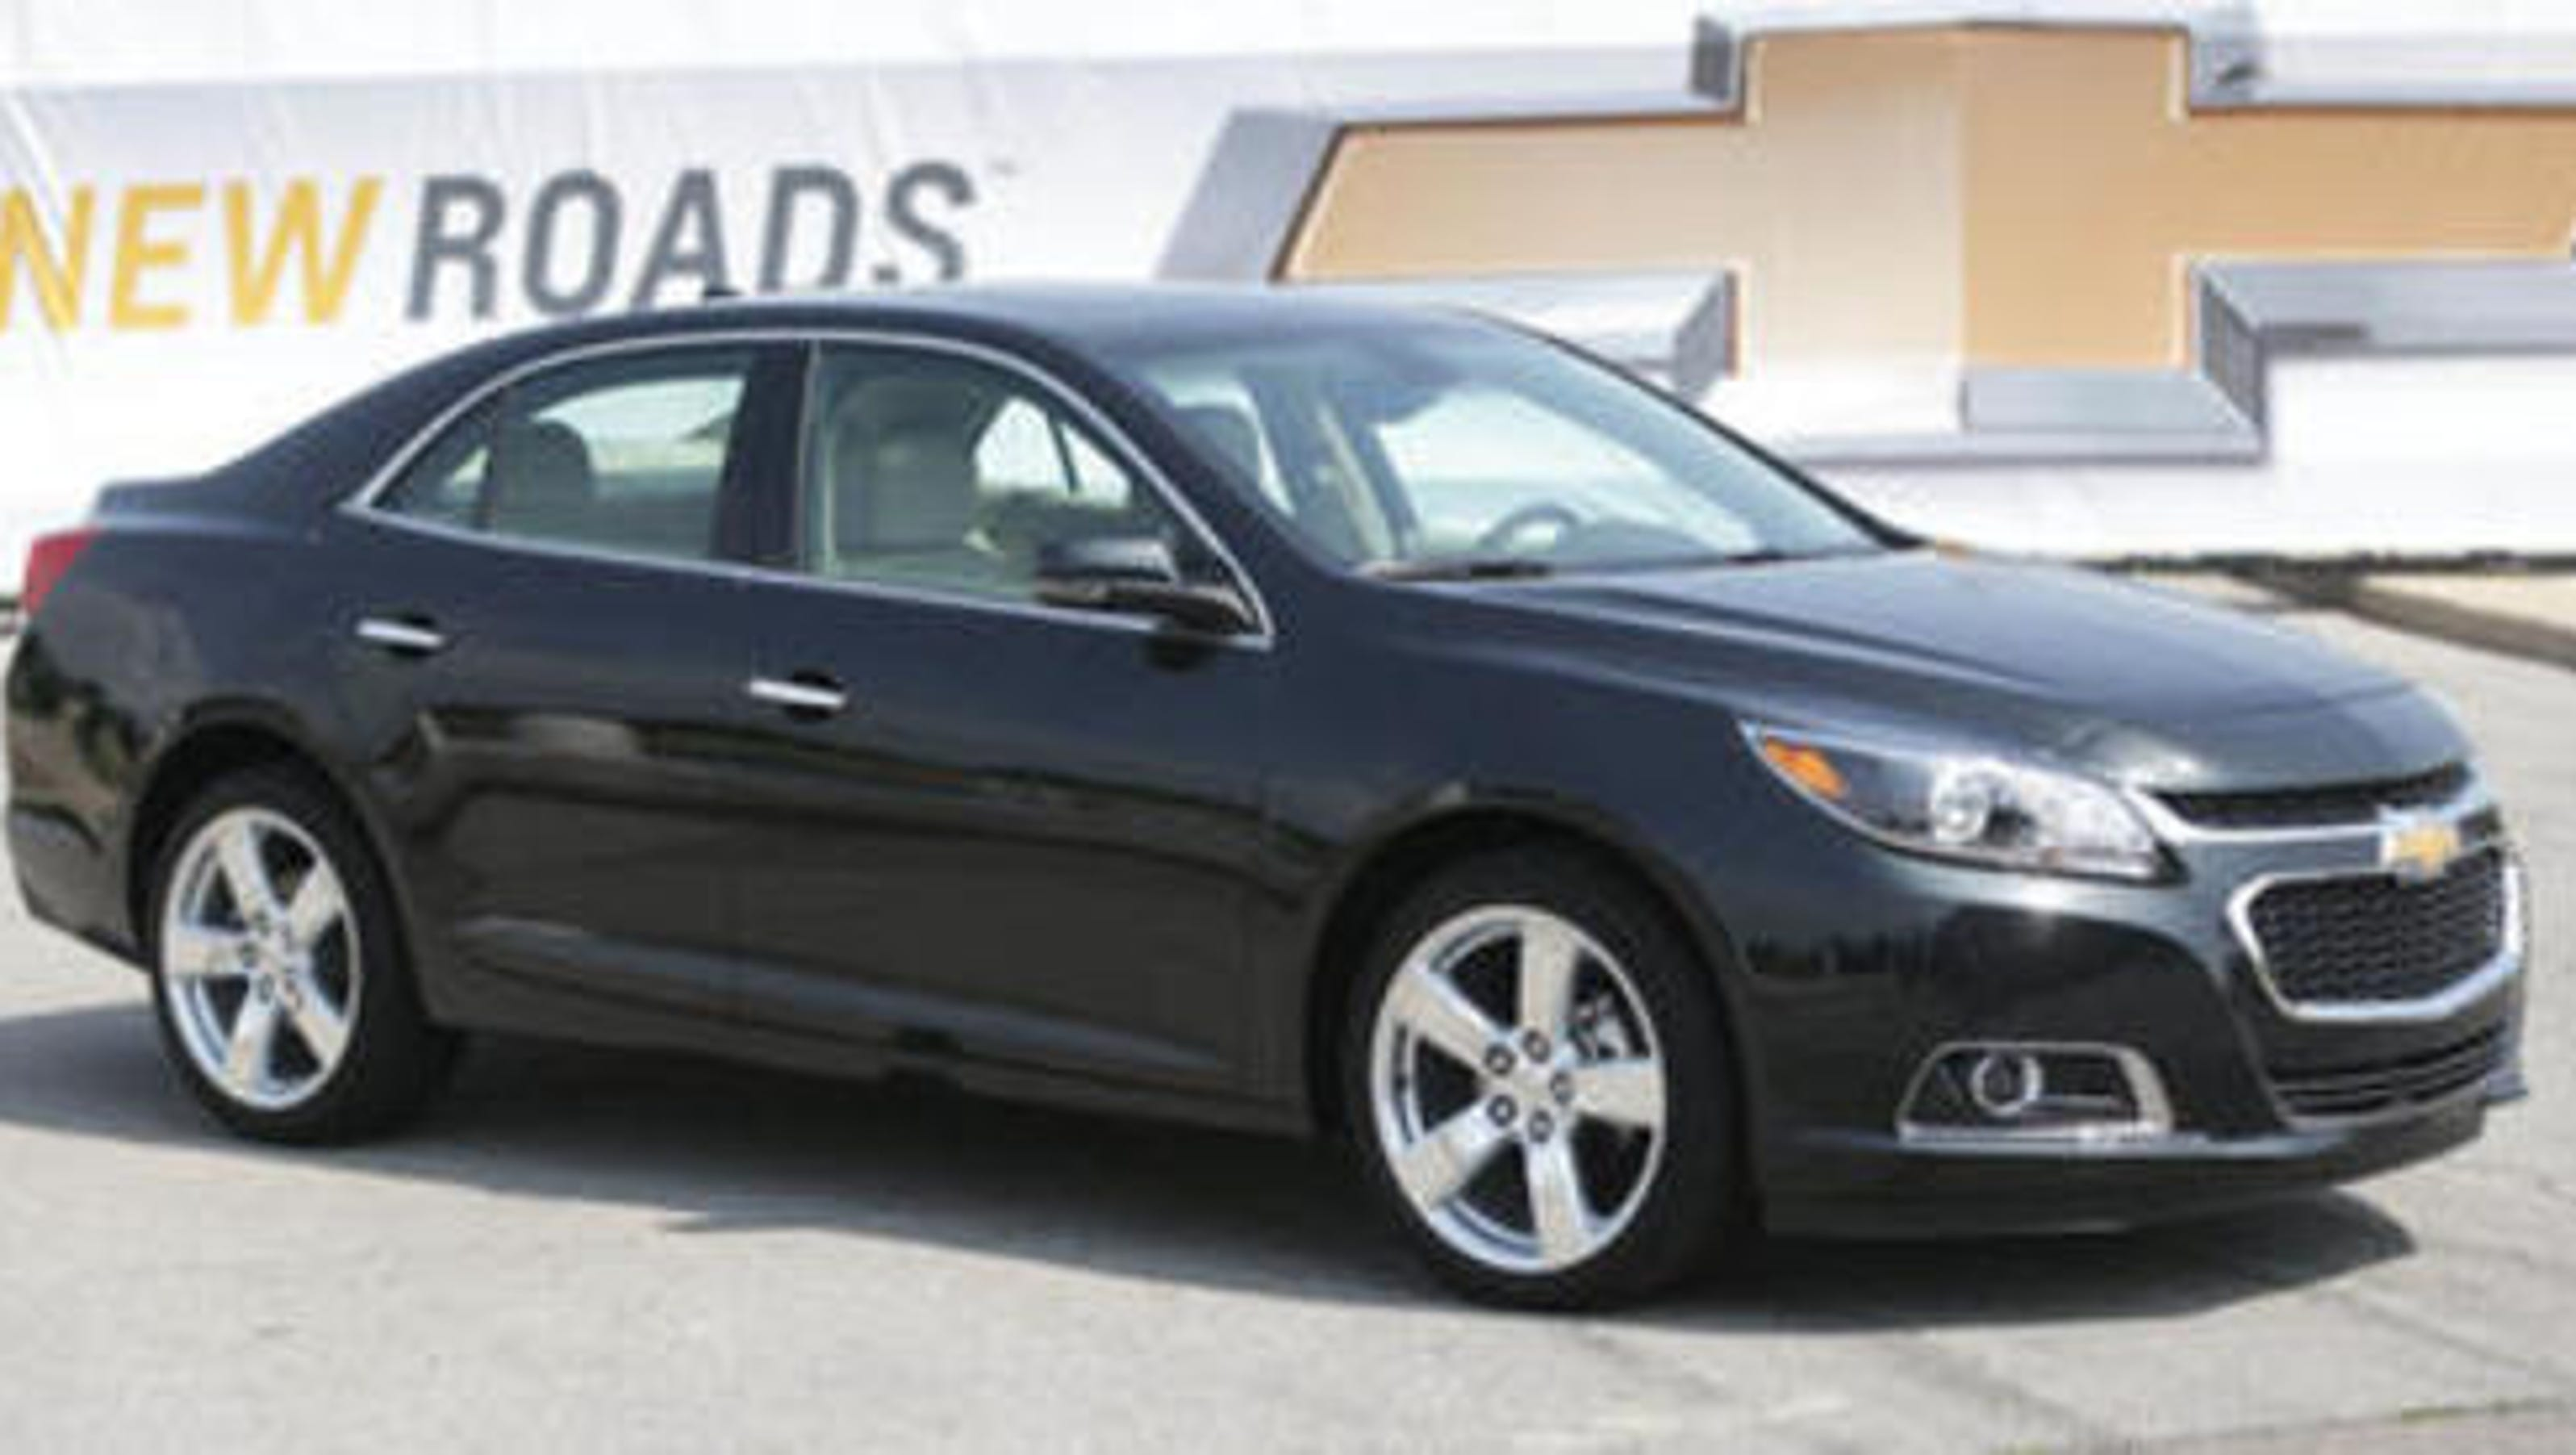 Consumer Reports best used cars for teens